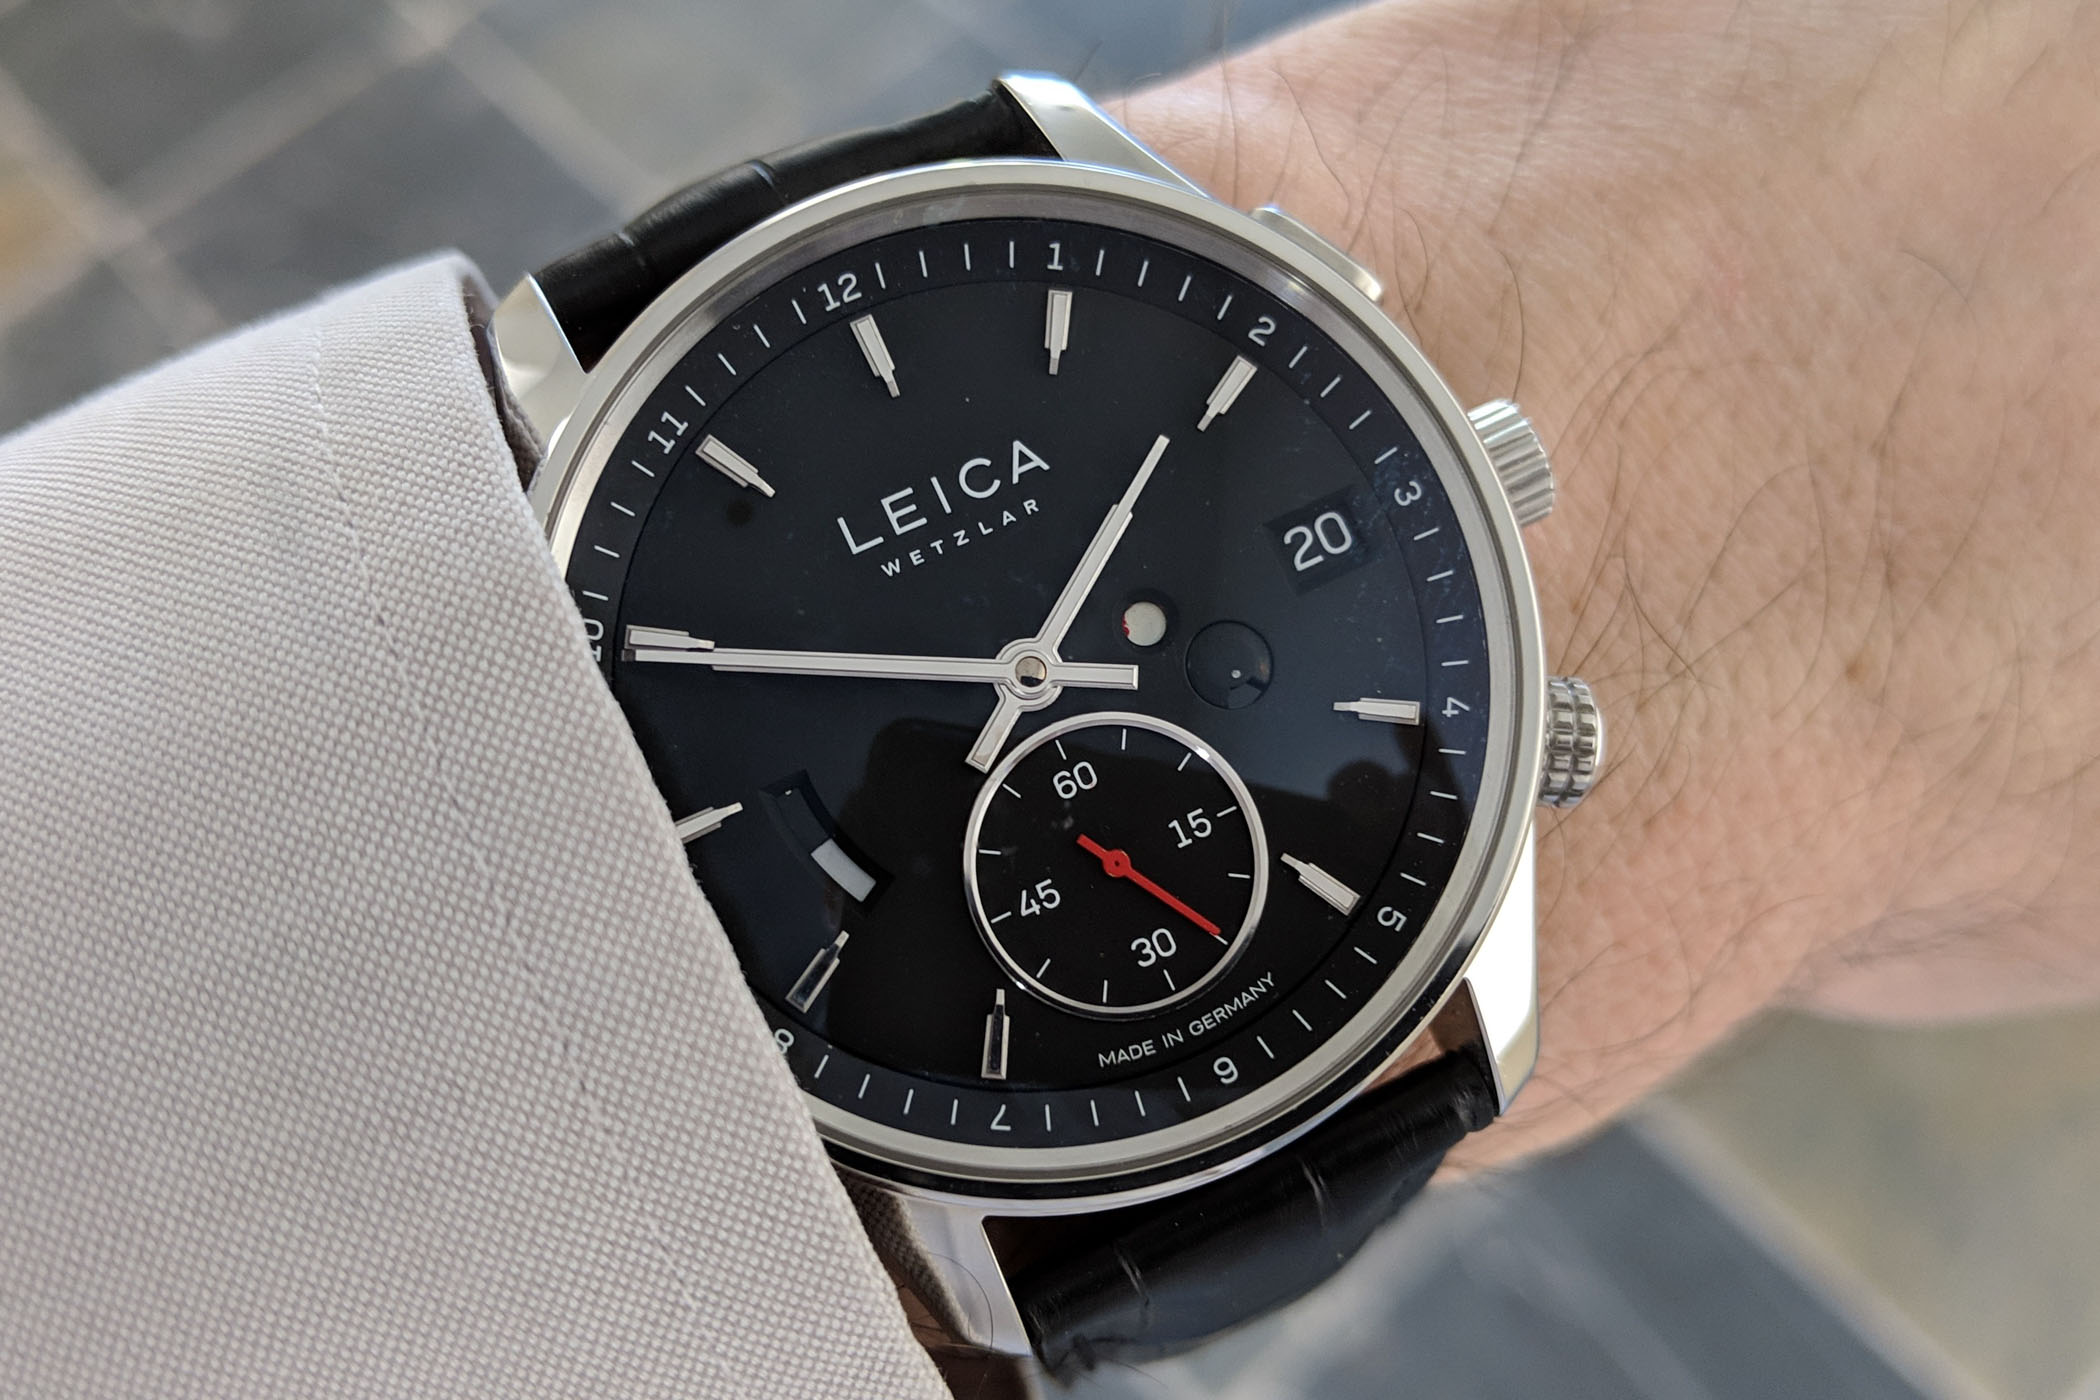 Leica Watch L1 and L2 Review - 1